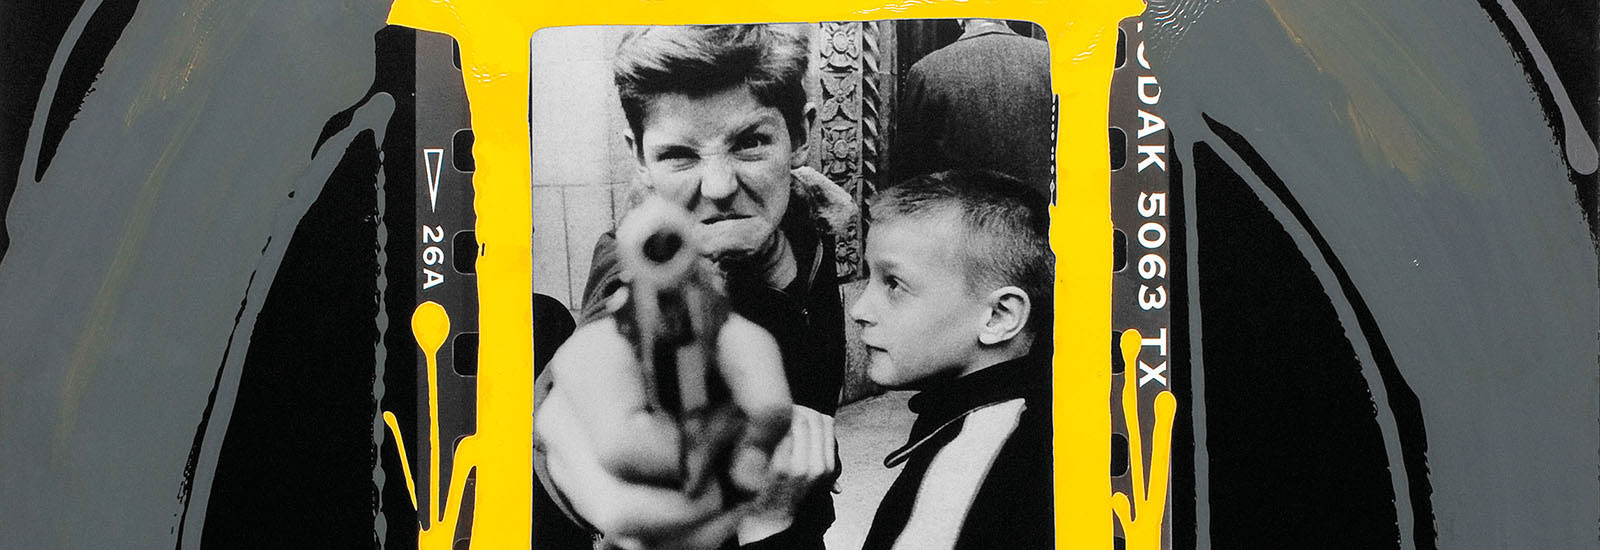 William Klein: Gun 1, Amsterdam Avenue, New York 1954, painted contact 2001 (detail) © William Klein